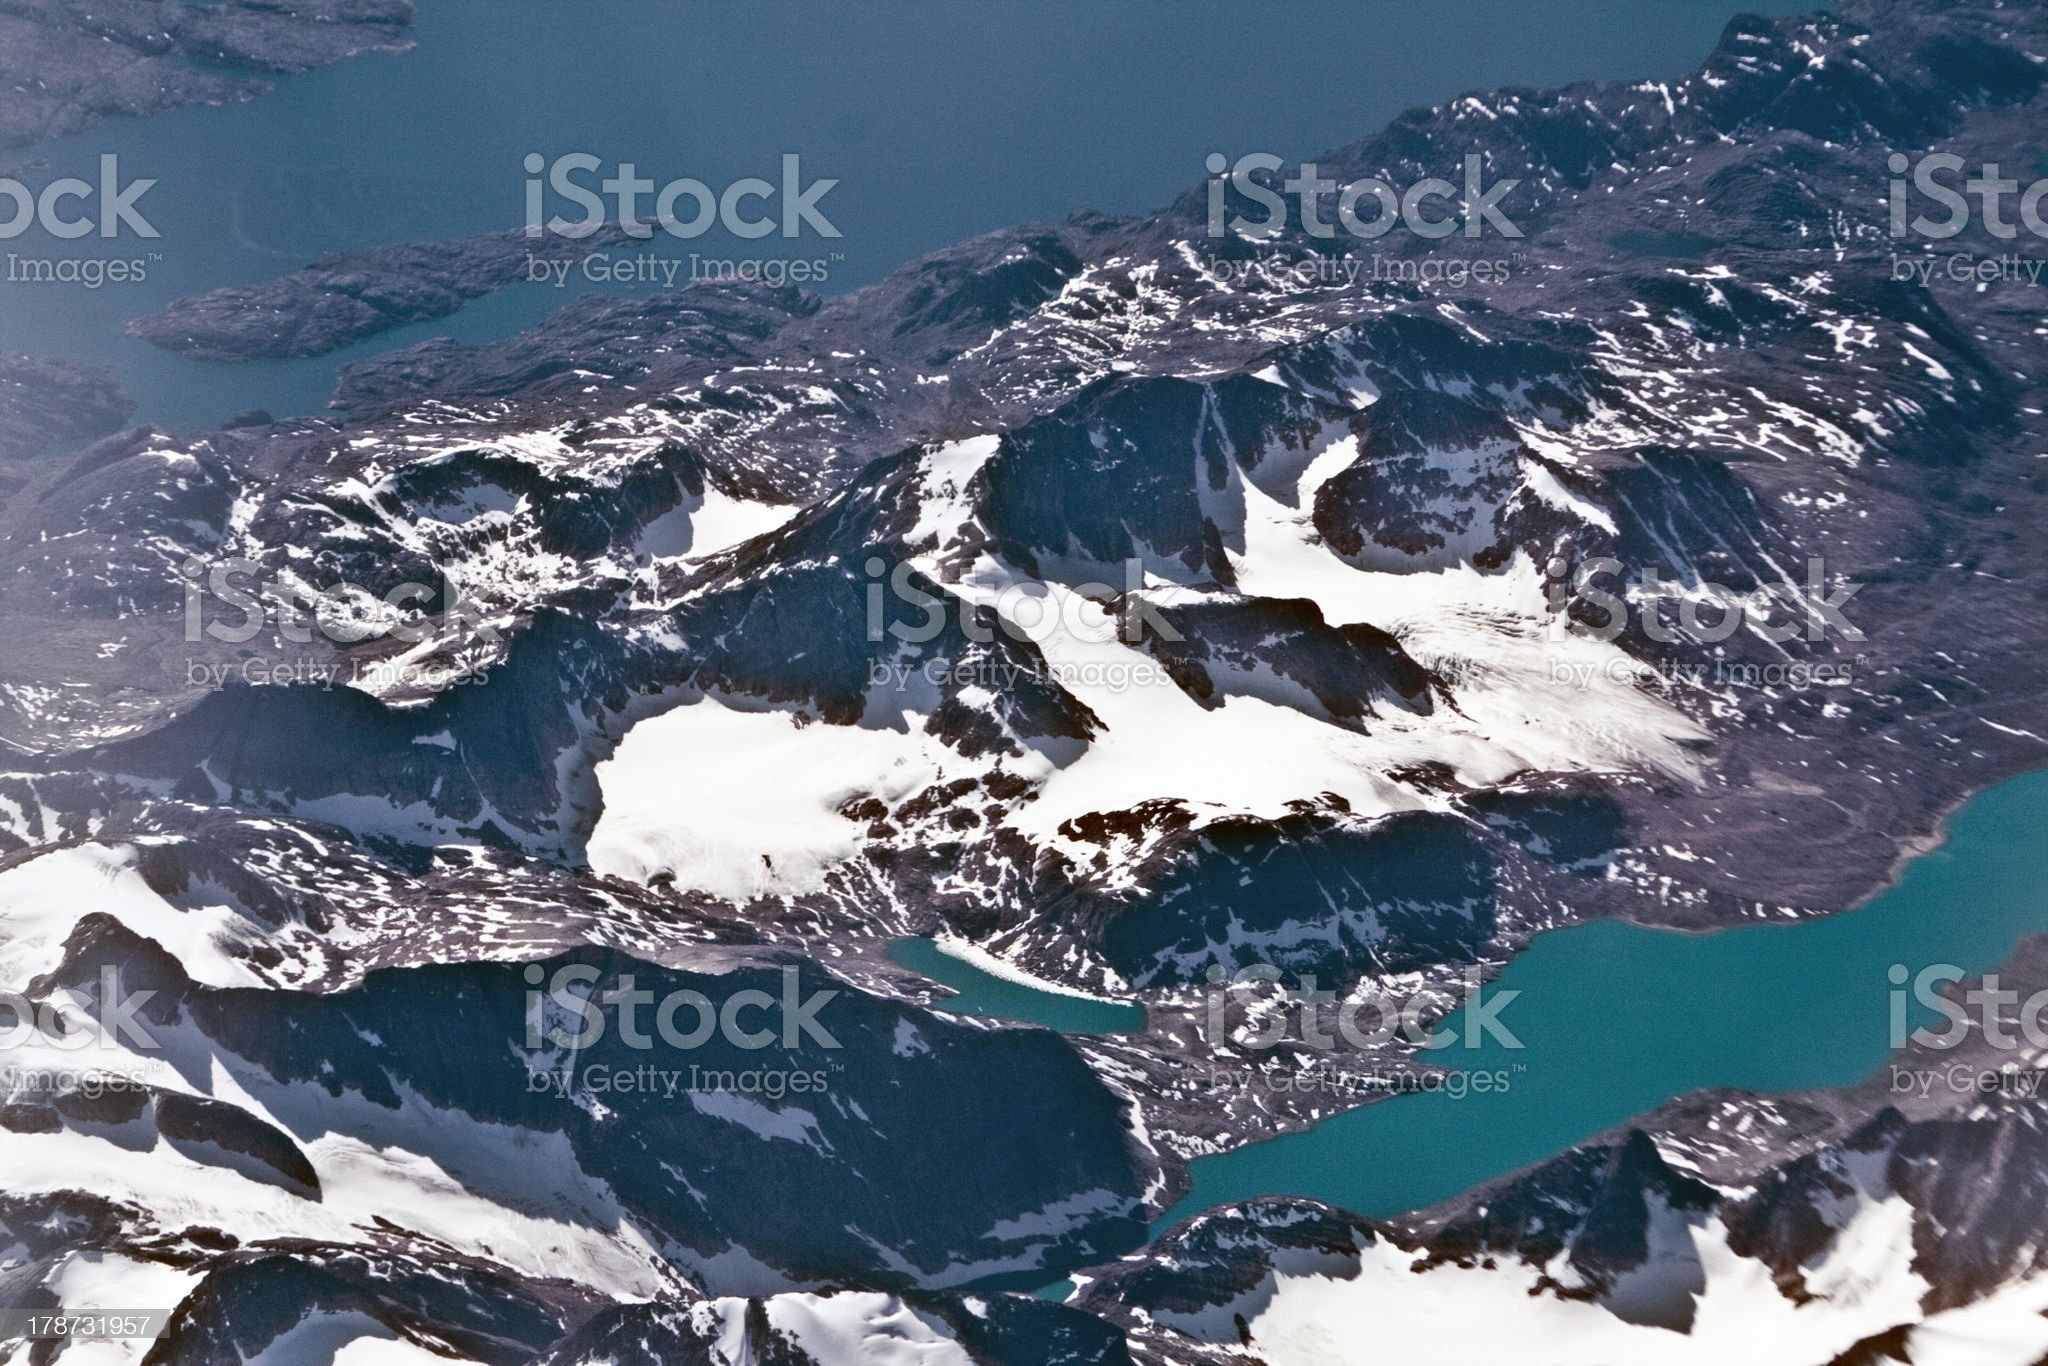 birds view from the plane toglaciers and mountains royalty-free stock photo